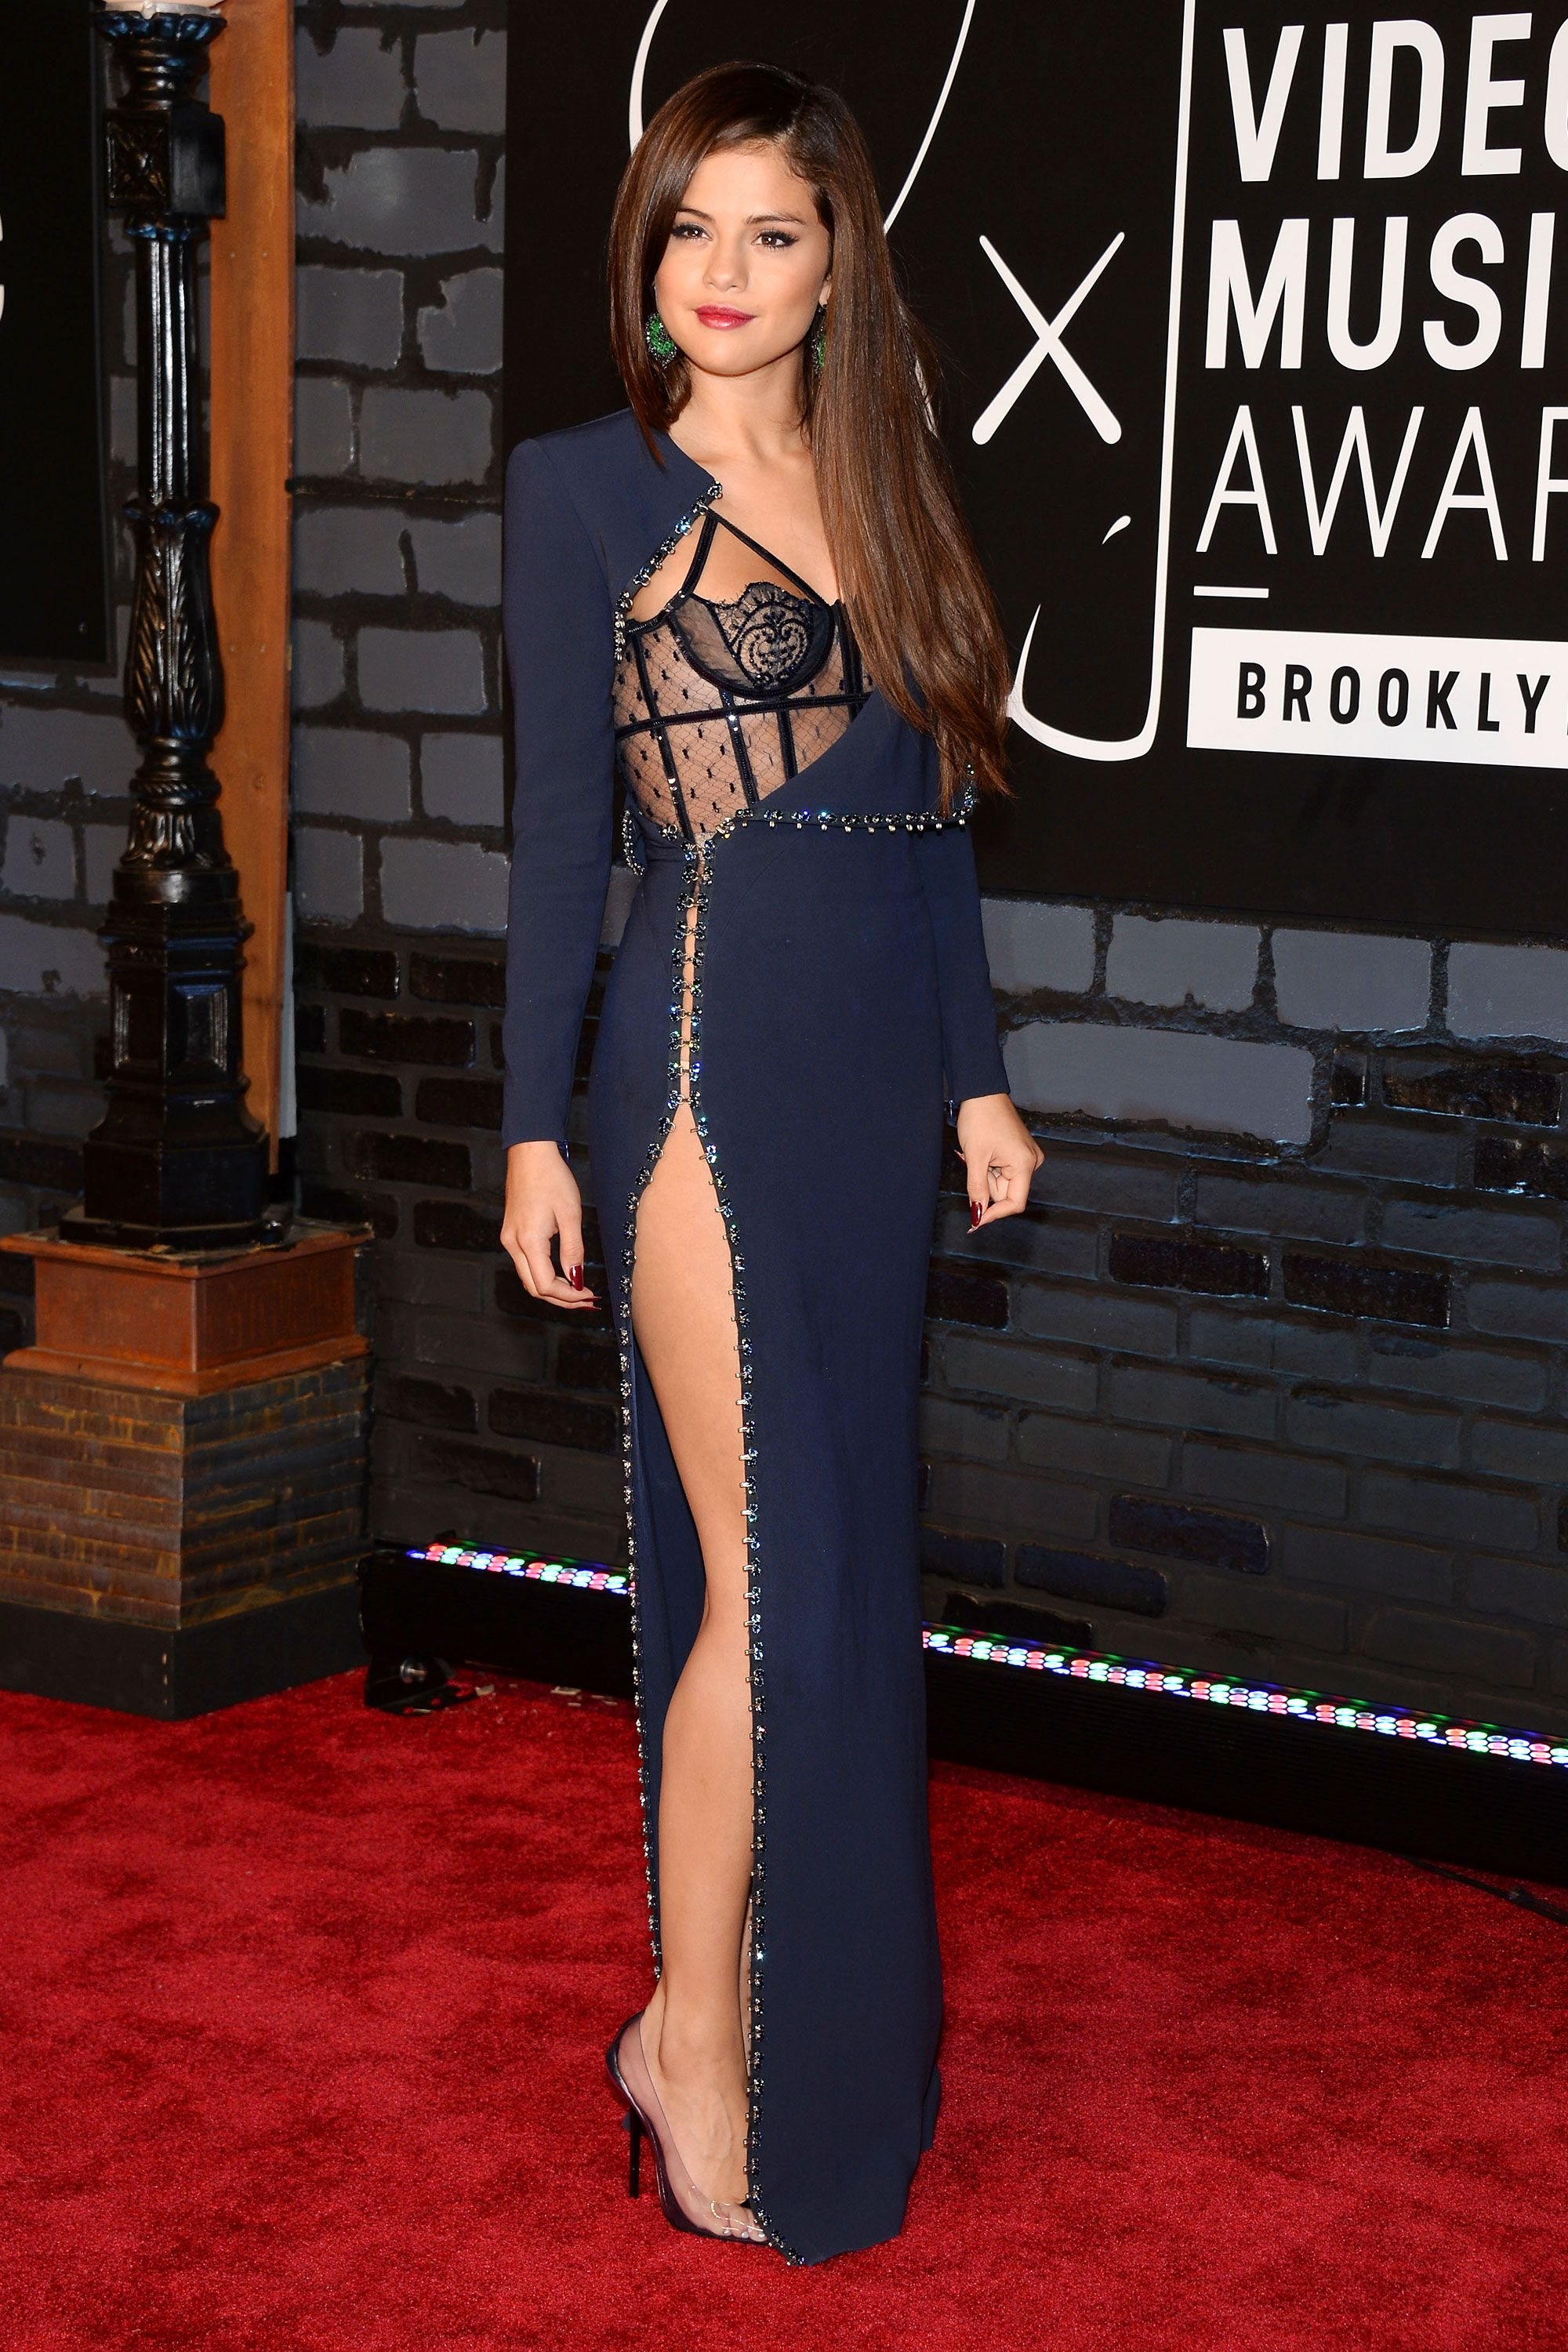 Celebrity Red Carpet Poses with High Slit